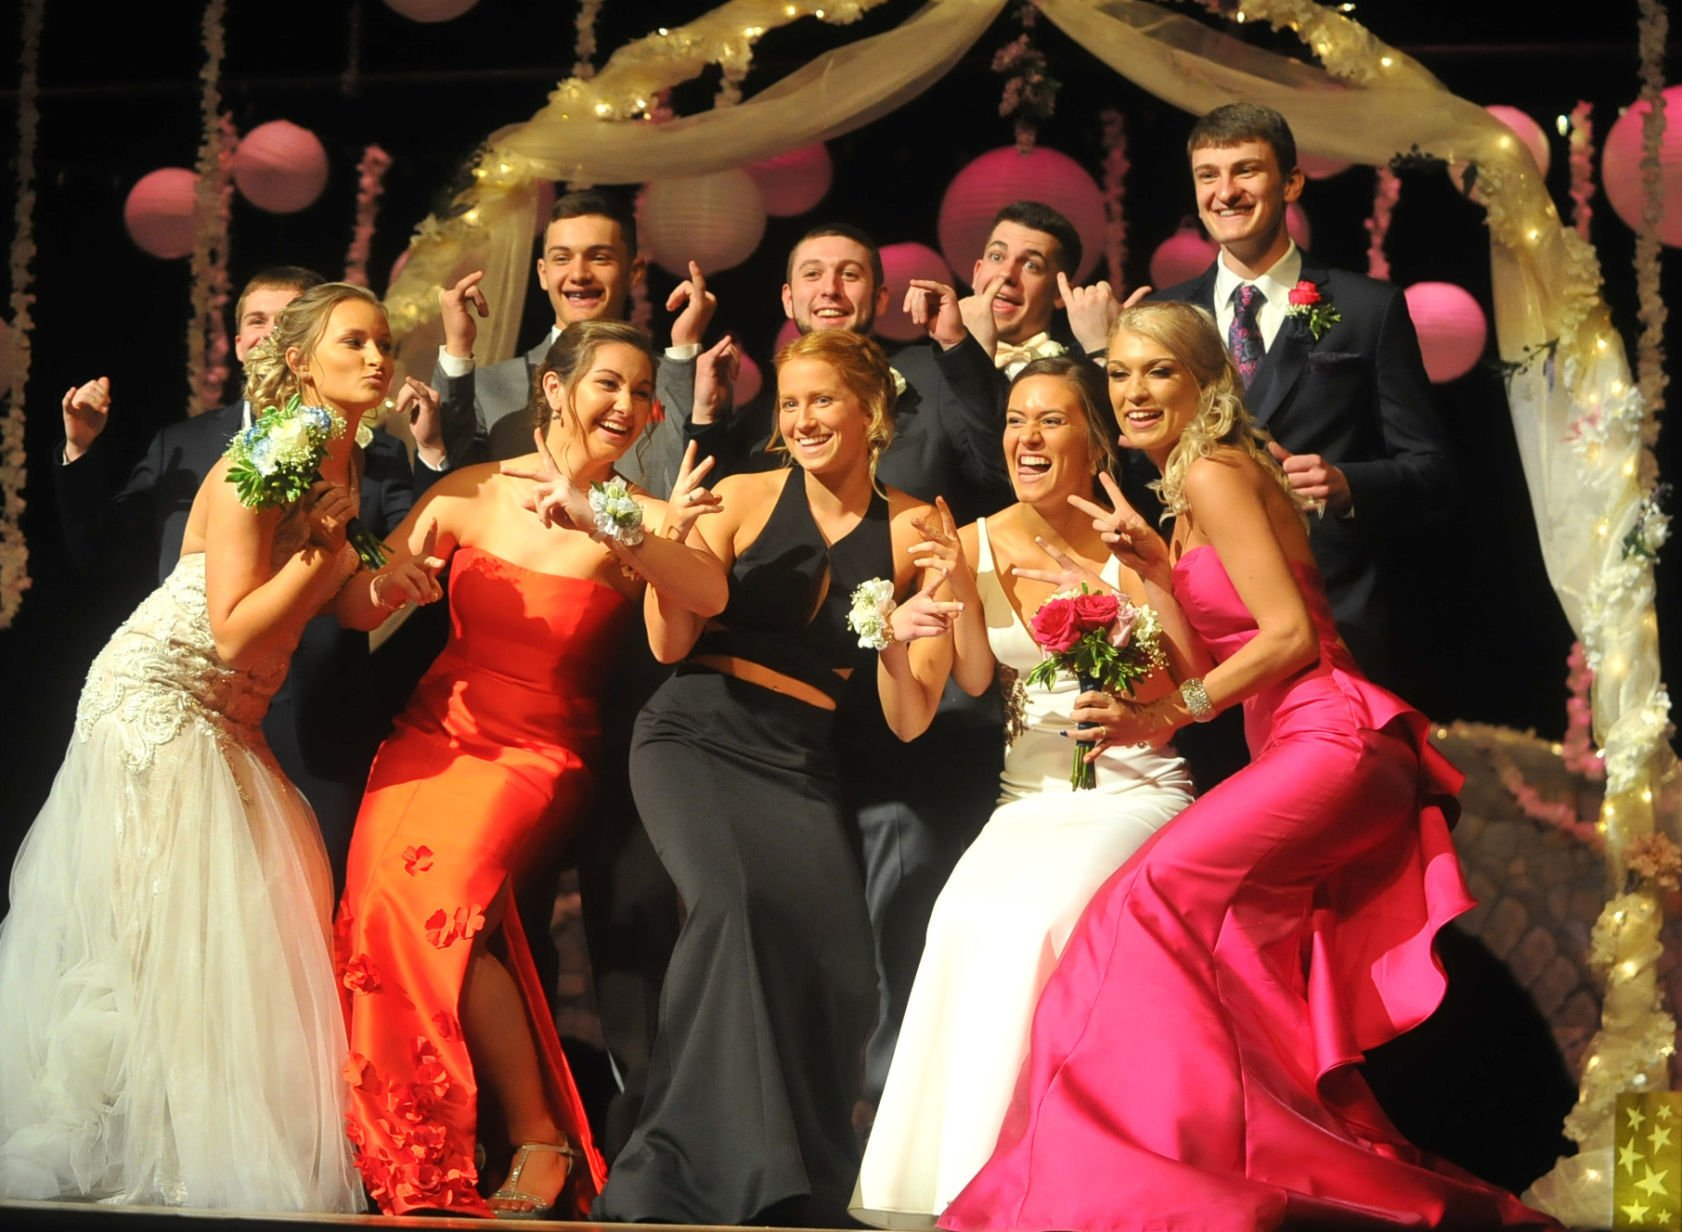 Prom season gets underway